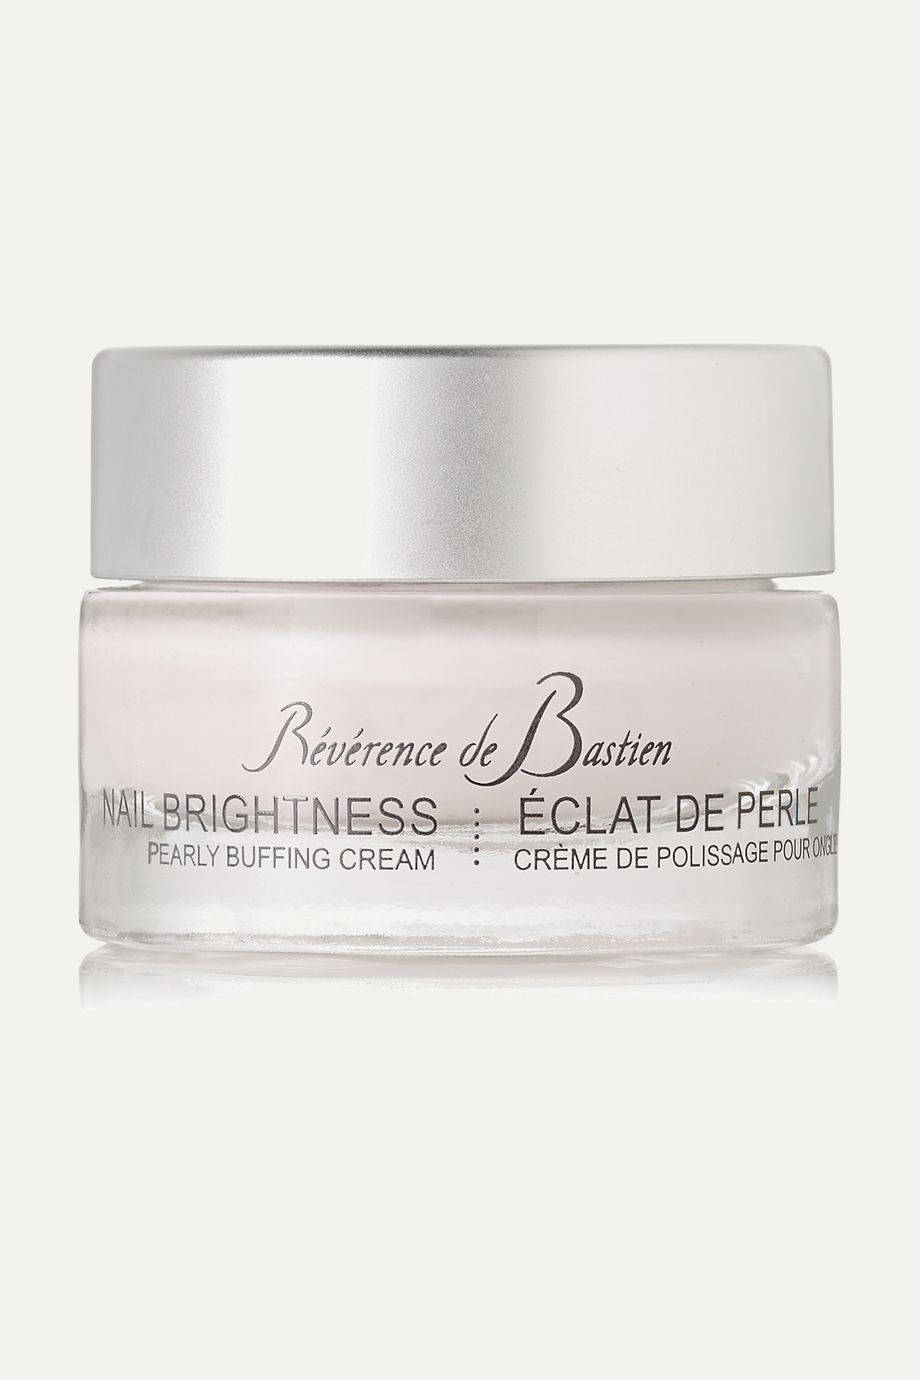 REVERENCE DE BASTIEN Nail Brightness Pearly Buffing Cream, 14ml